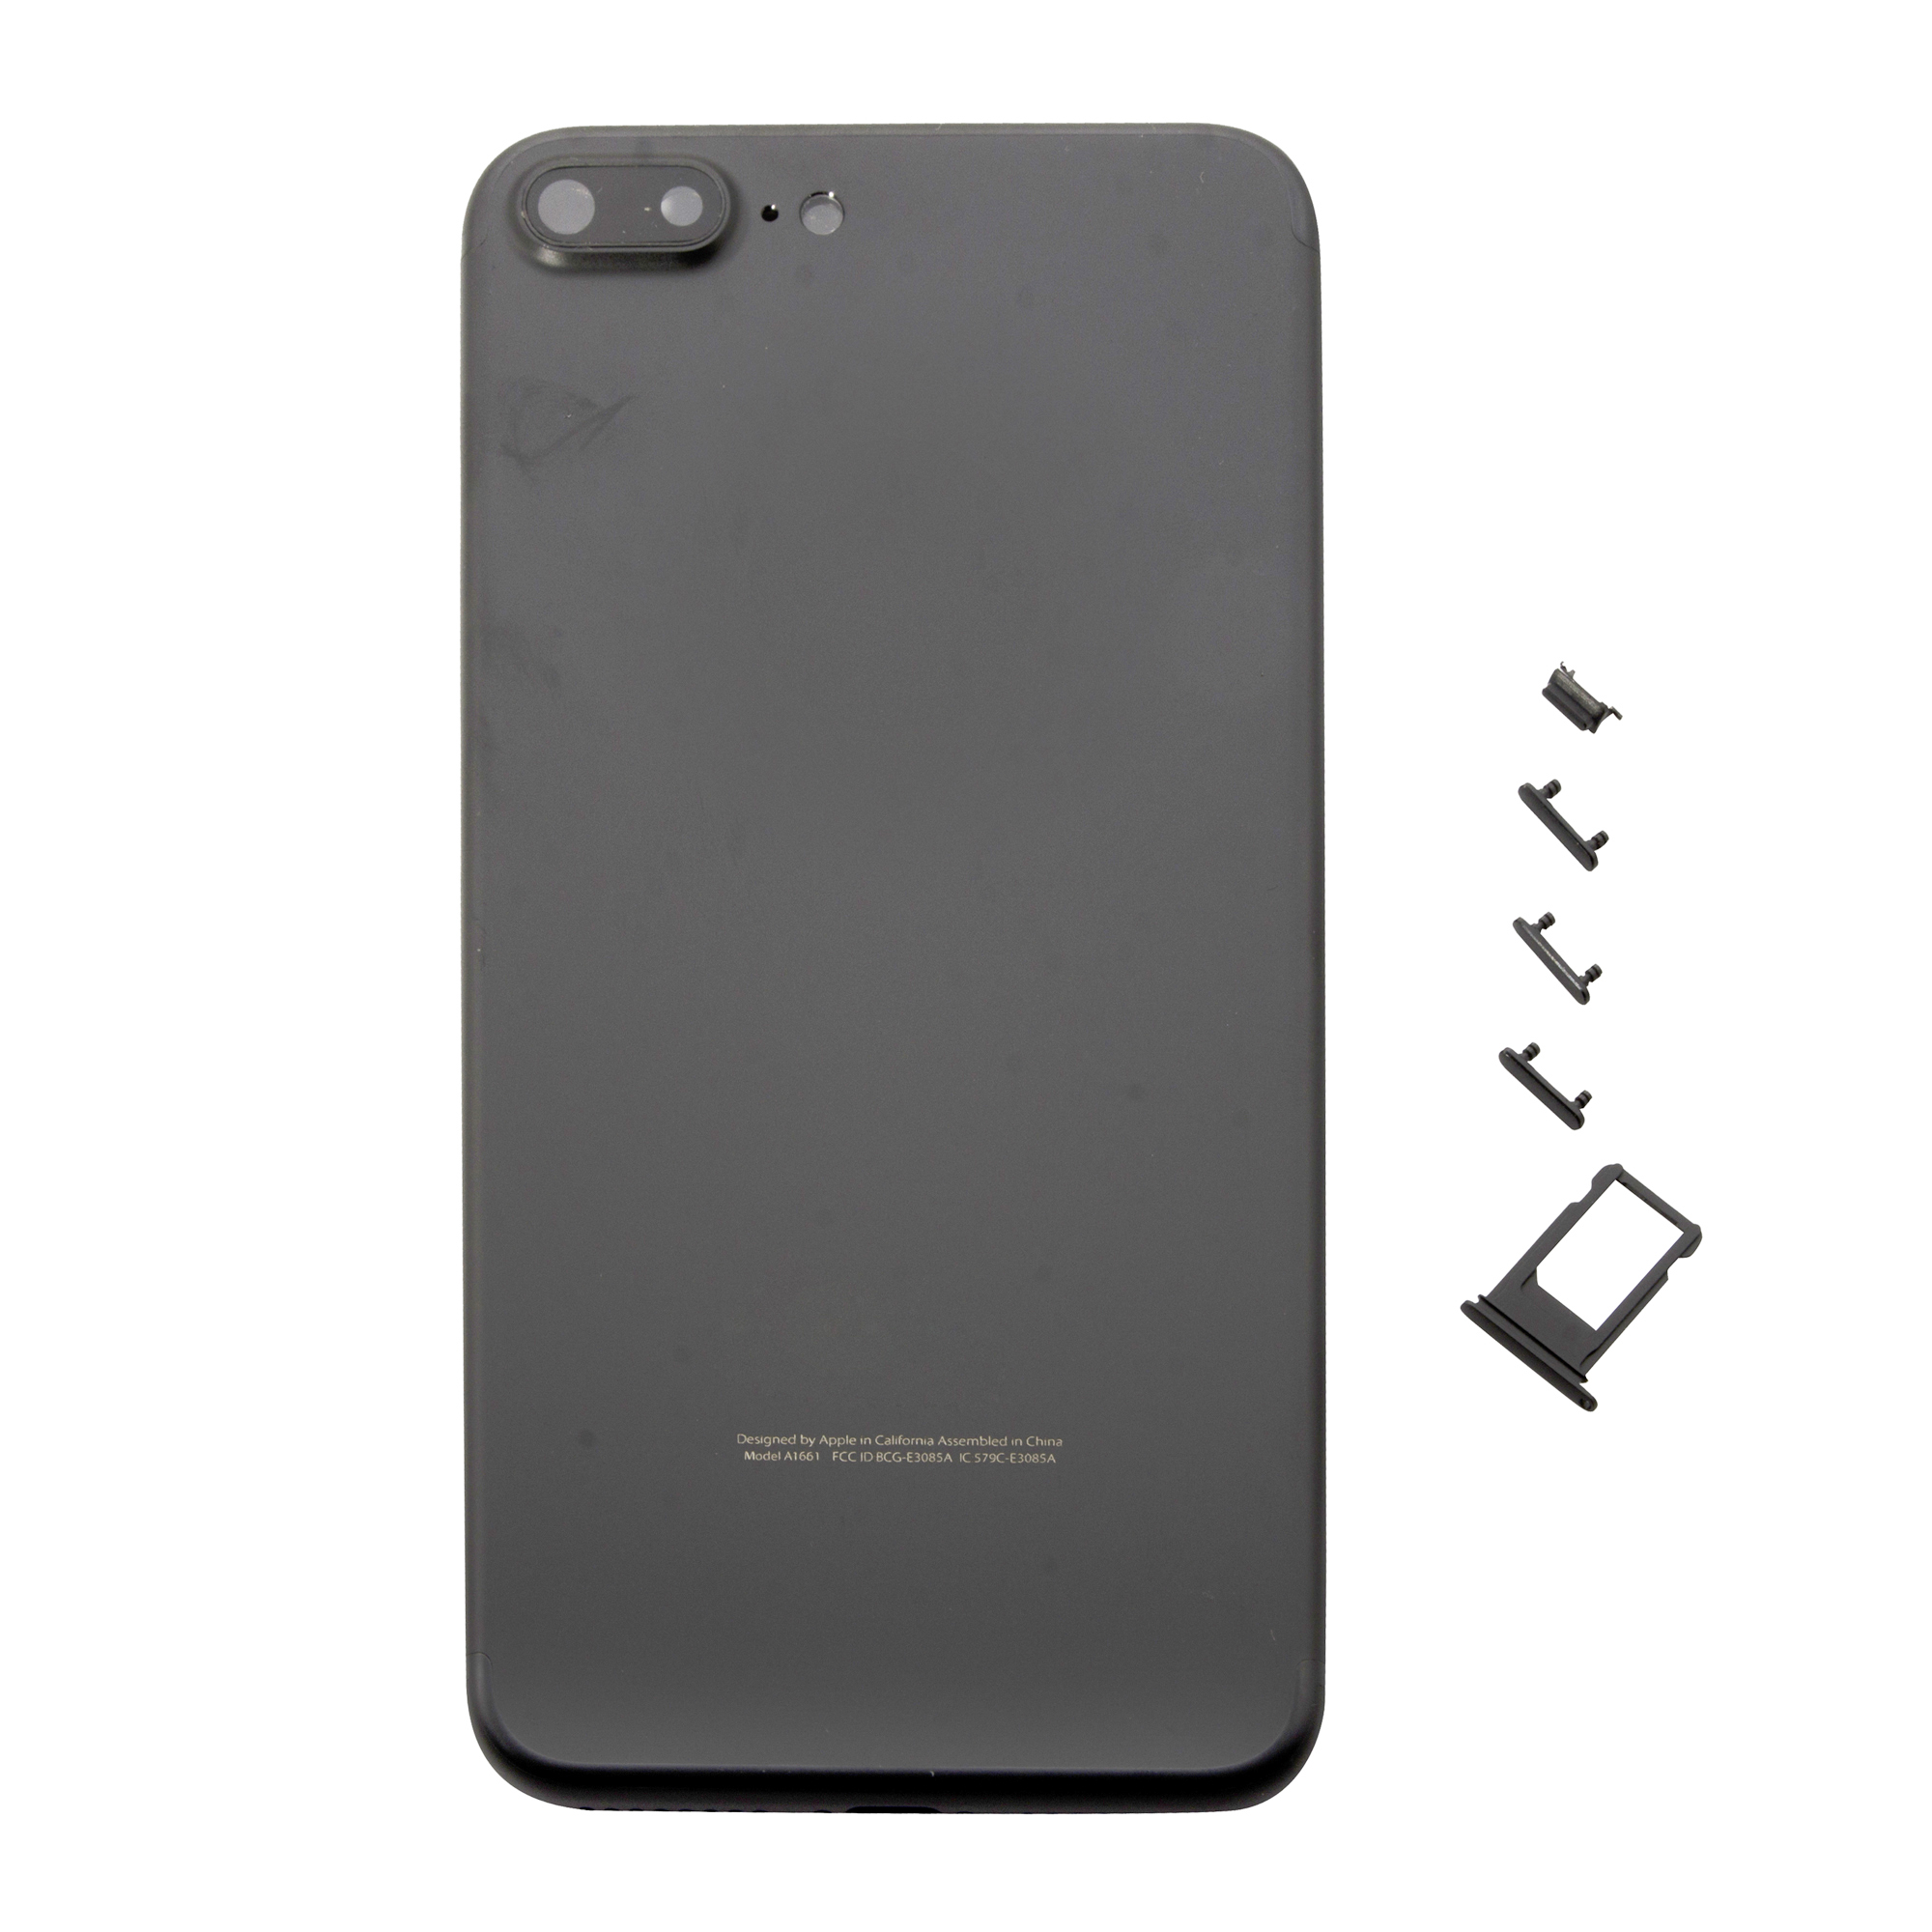 separation shoes 8ad01 dd6cf Metal Battery Back Rear Cover Housing Replacement Part Compatible With  iPhone 7 Plus - Black